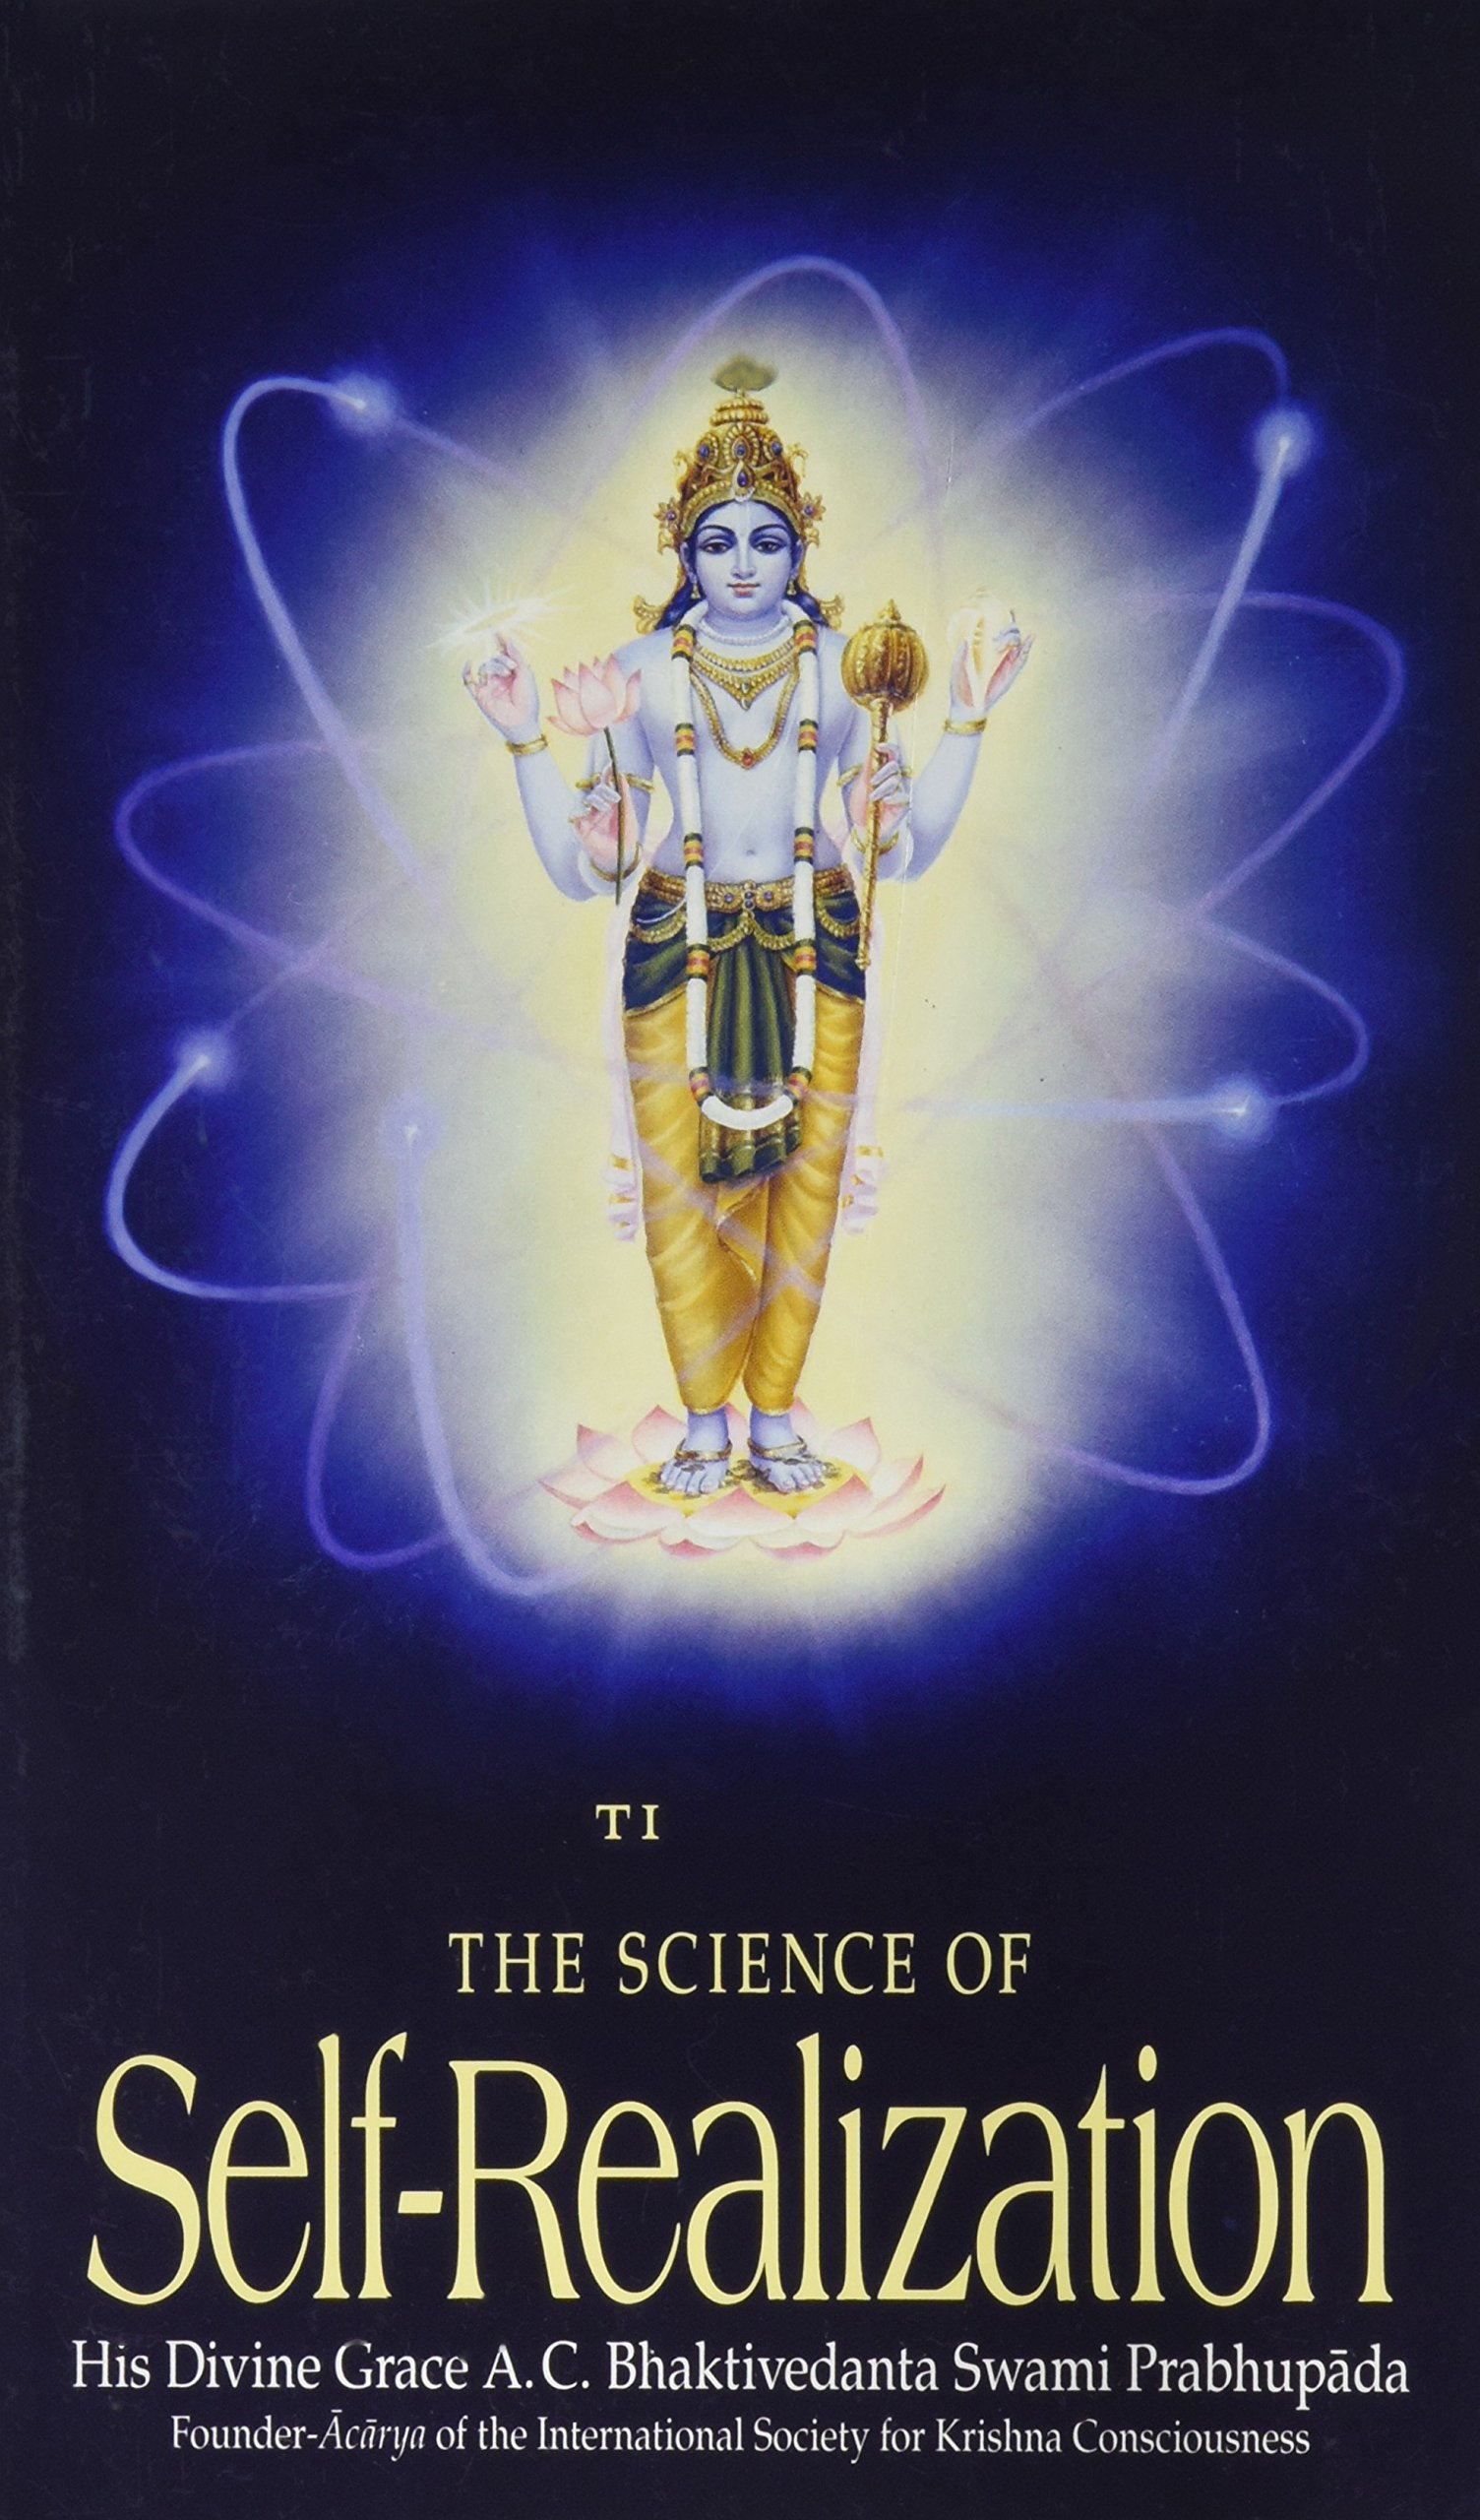 The Science of Self-realization: Amazon co uk: A C